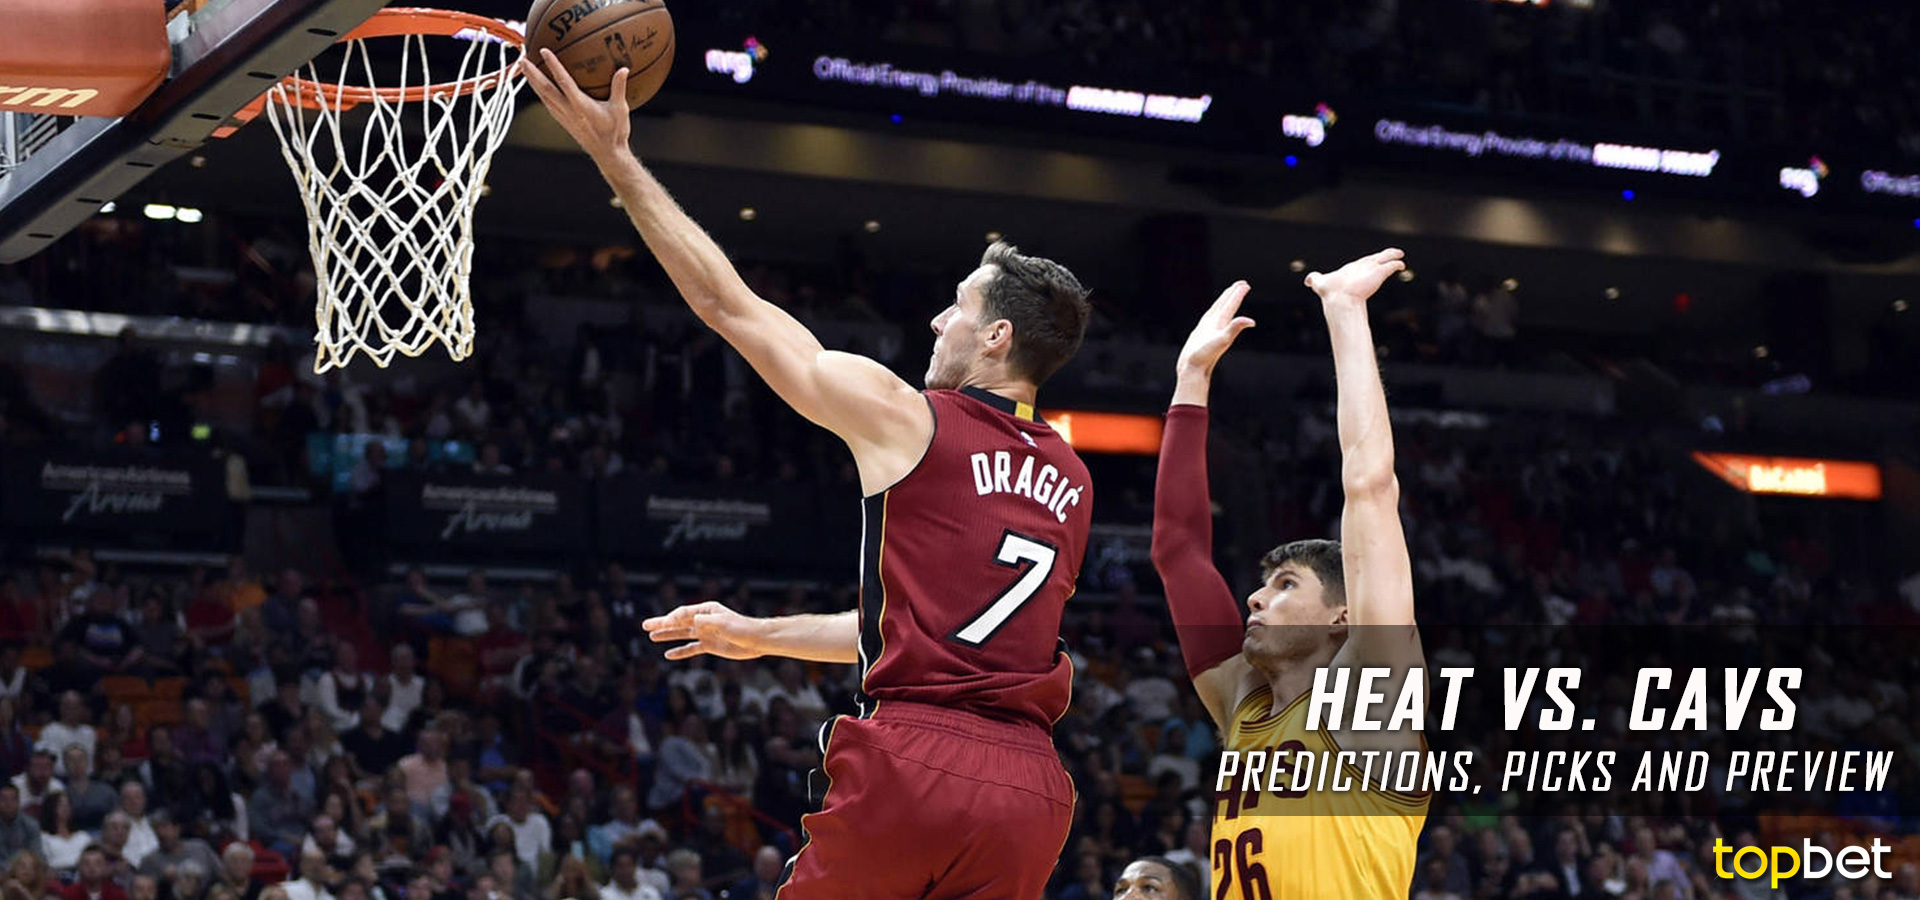 Heat vs Cavs Predictions, Picks and Preview – March 2017